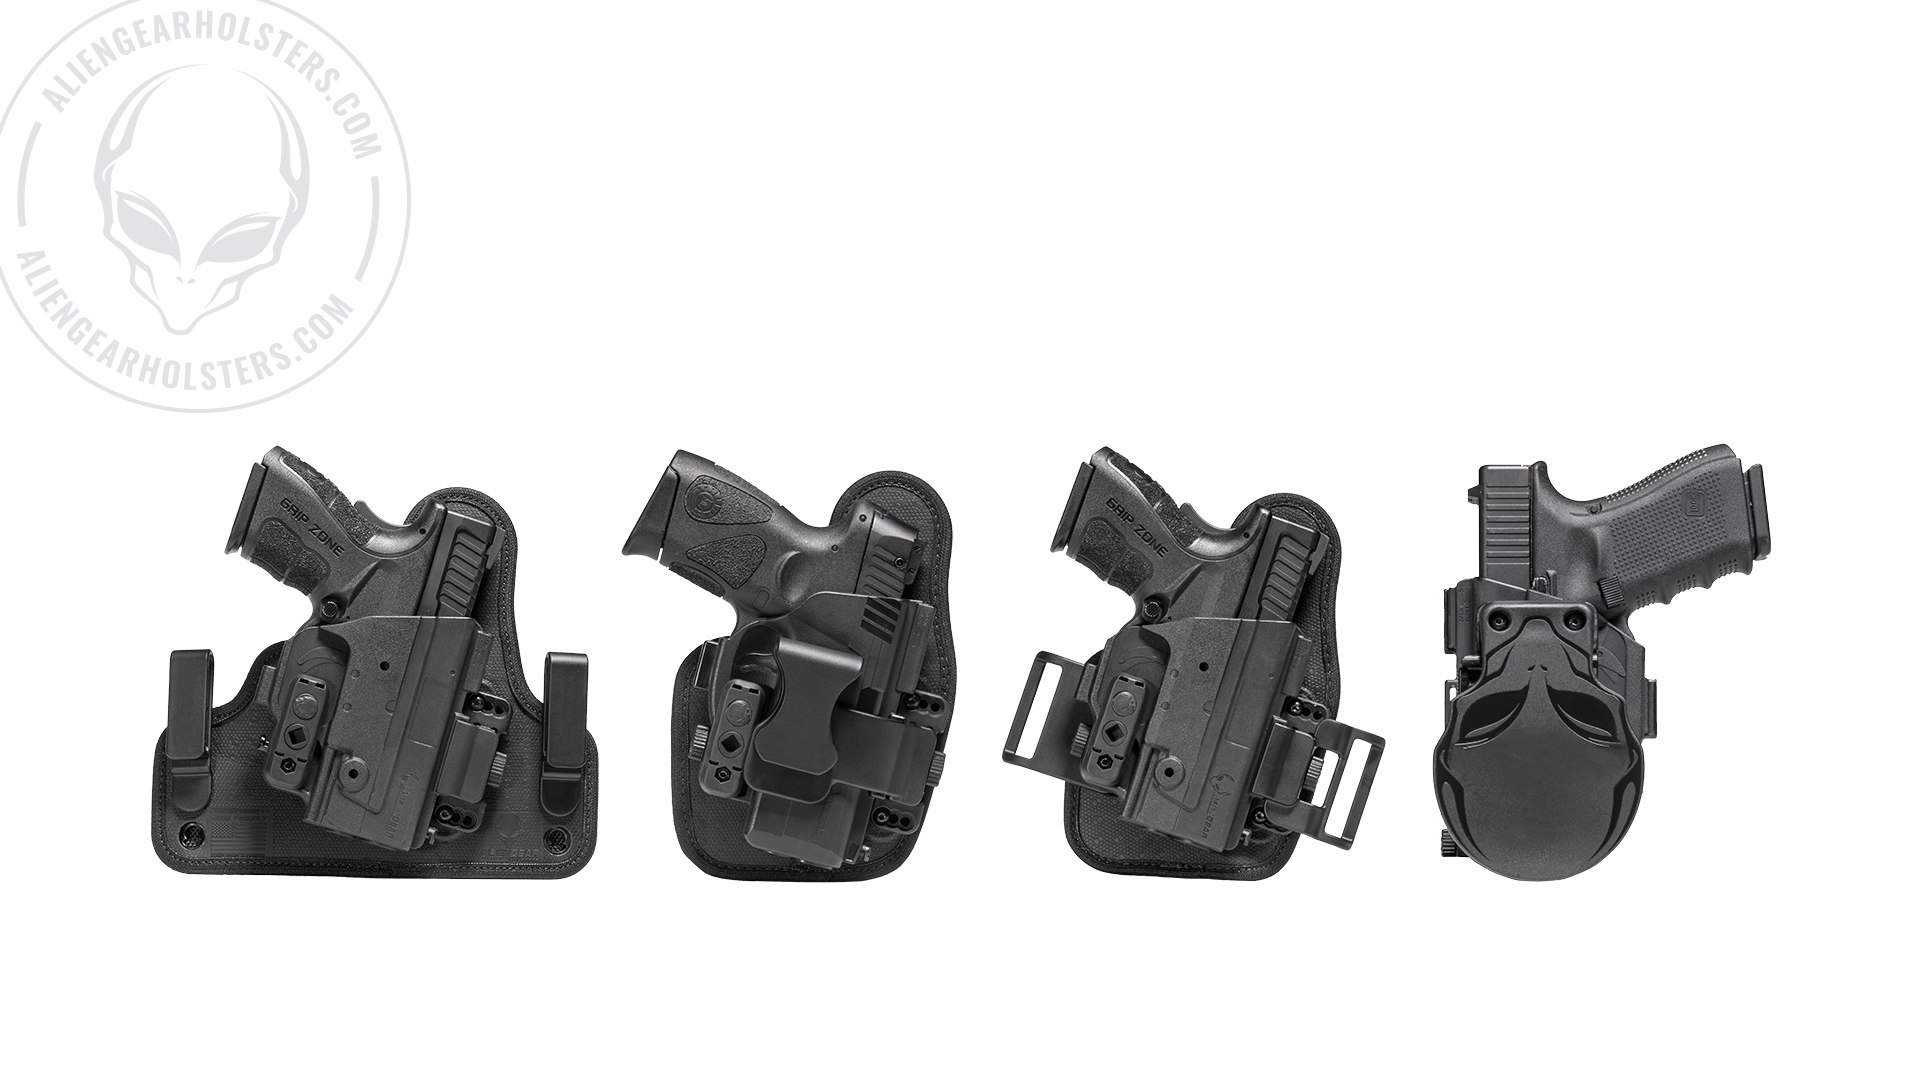 Alien gear holster coupon code